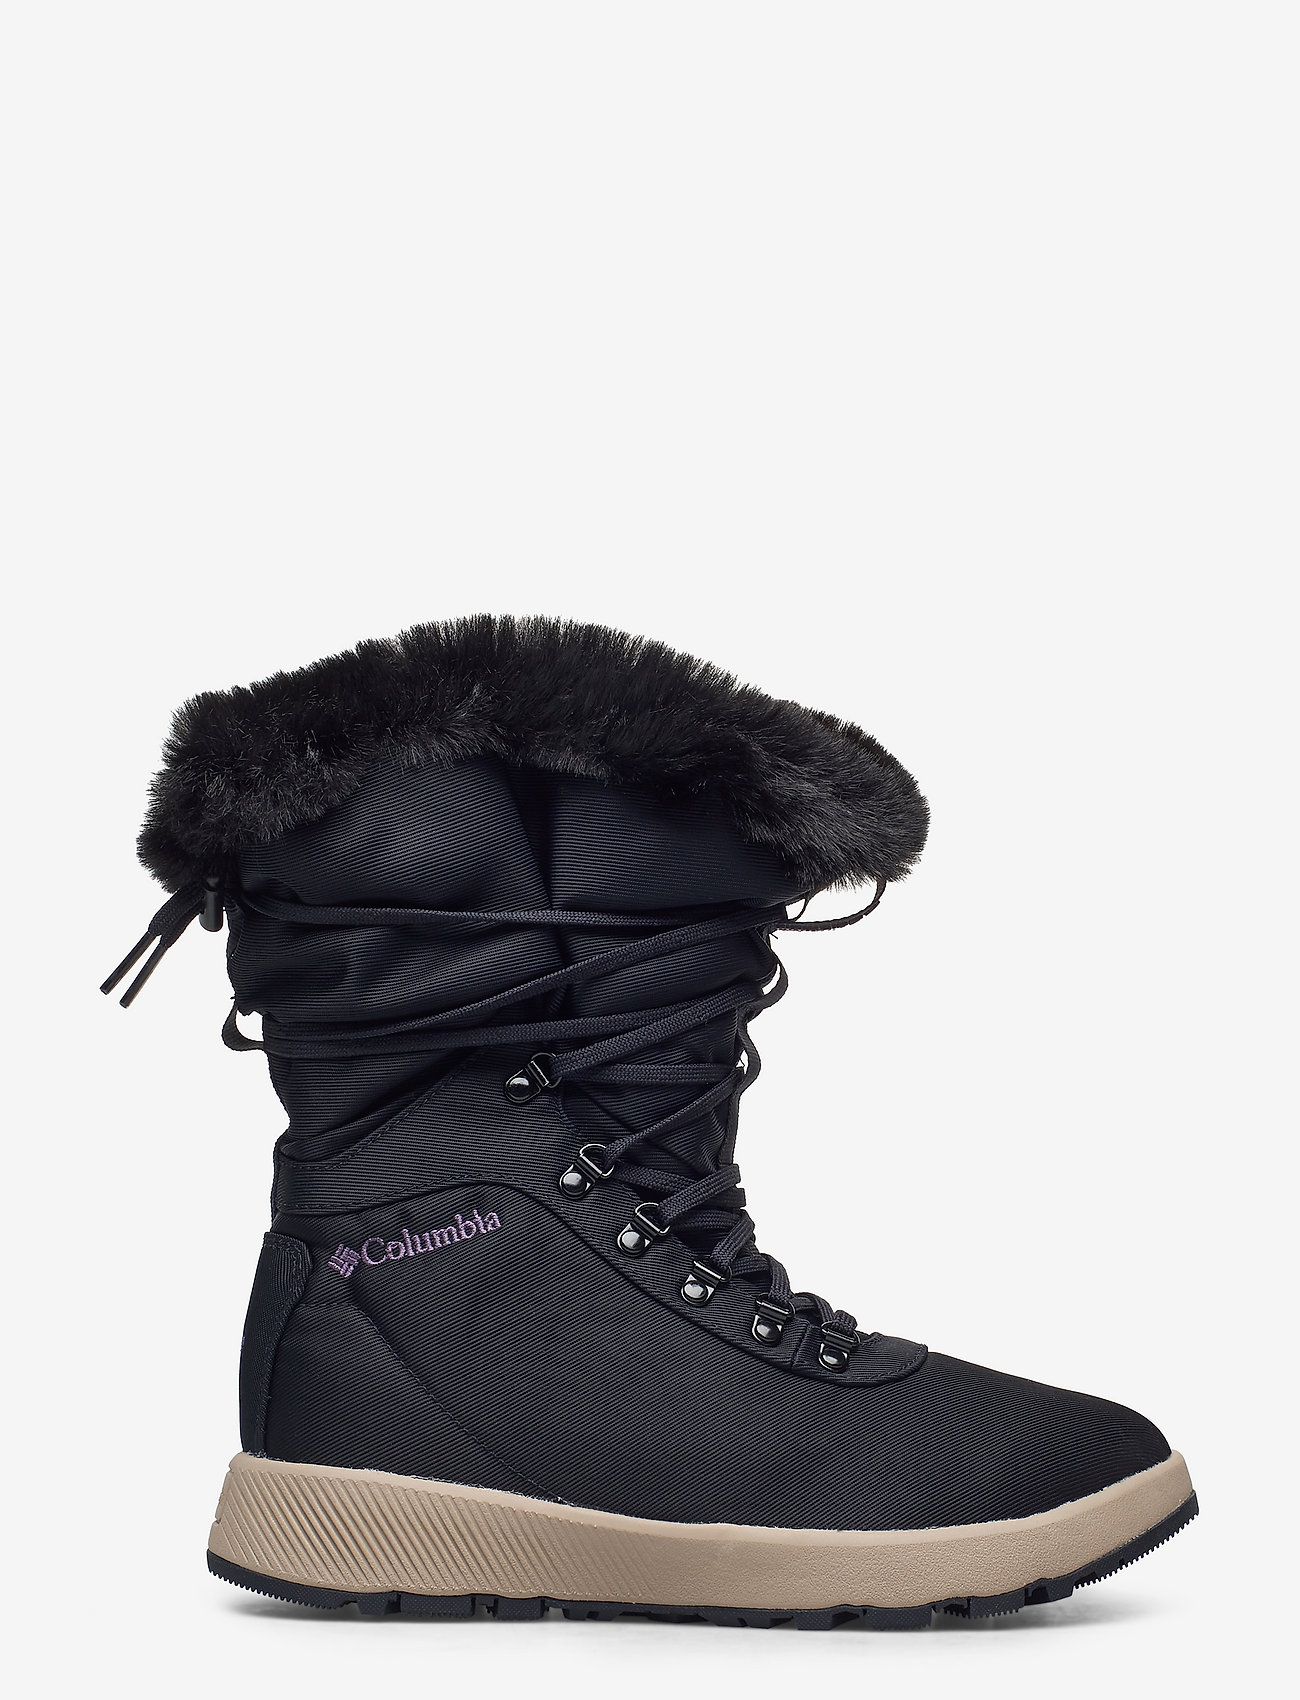 Columbia - SLOPESIDE VILLAGE™ OMNI-HEAT™ HI - platte enkellaarsjes - extreme midnigh - 1